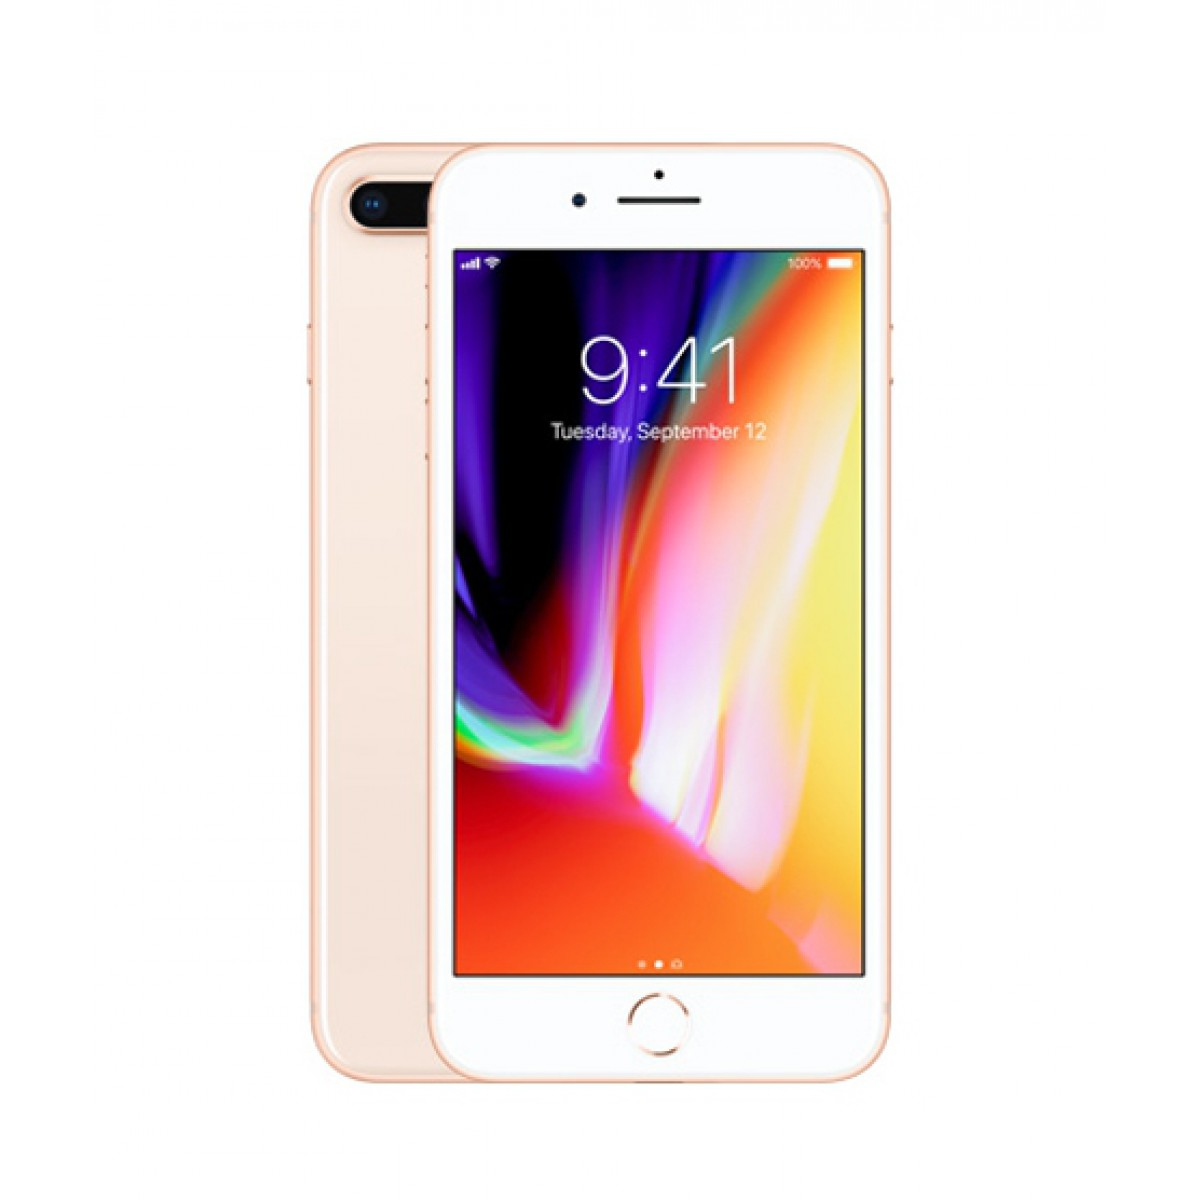 iphone plus price apple iphone 8 plus 256gb gold price in pakistan homesh 12142